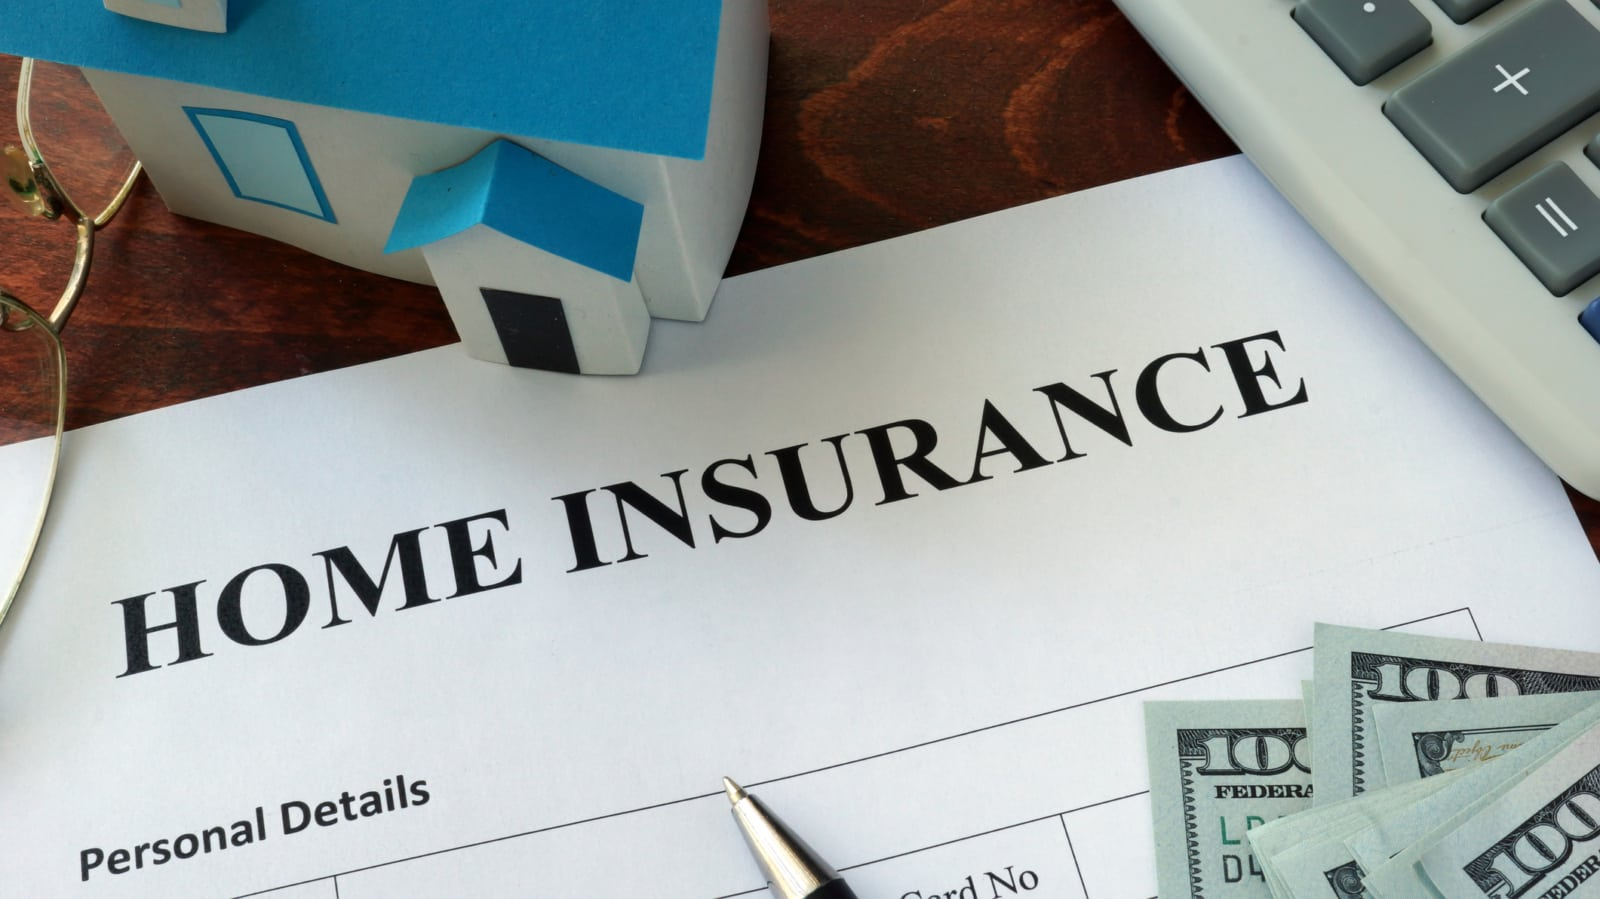 Home Insurance Form Stock Photo